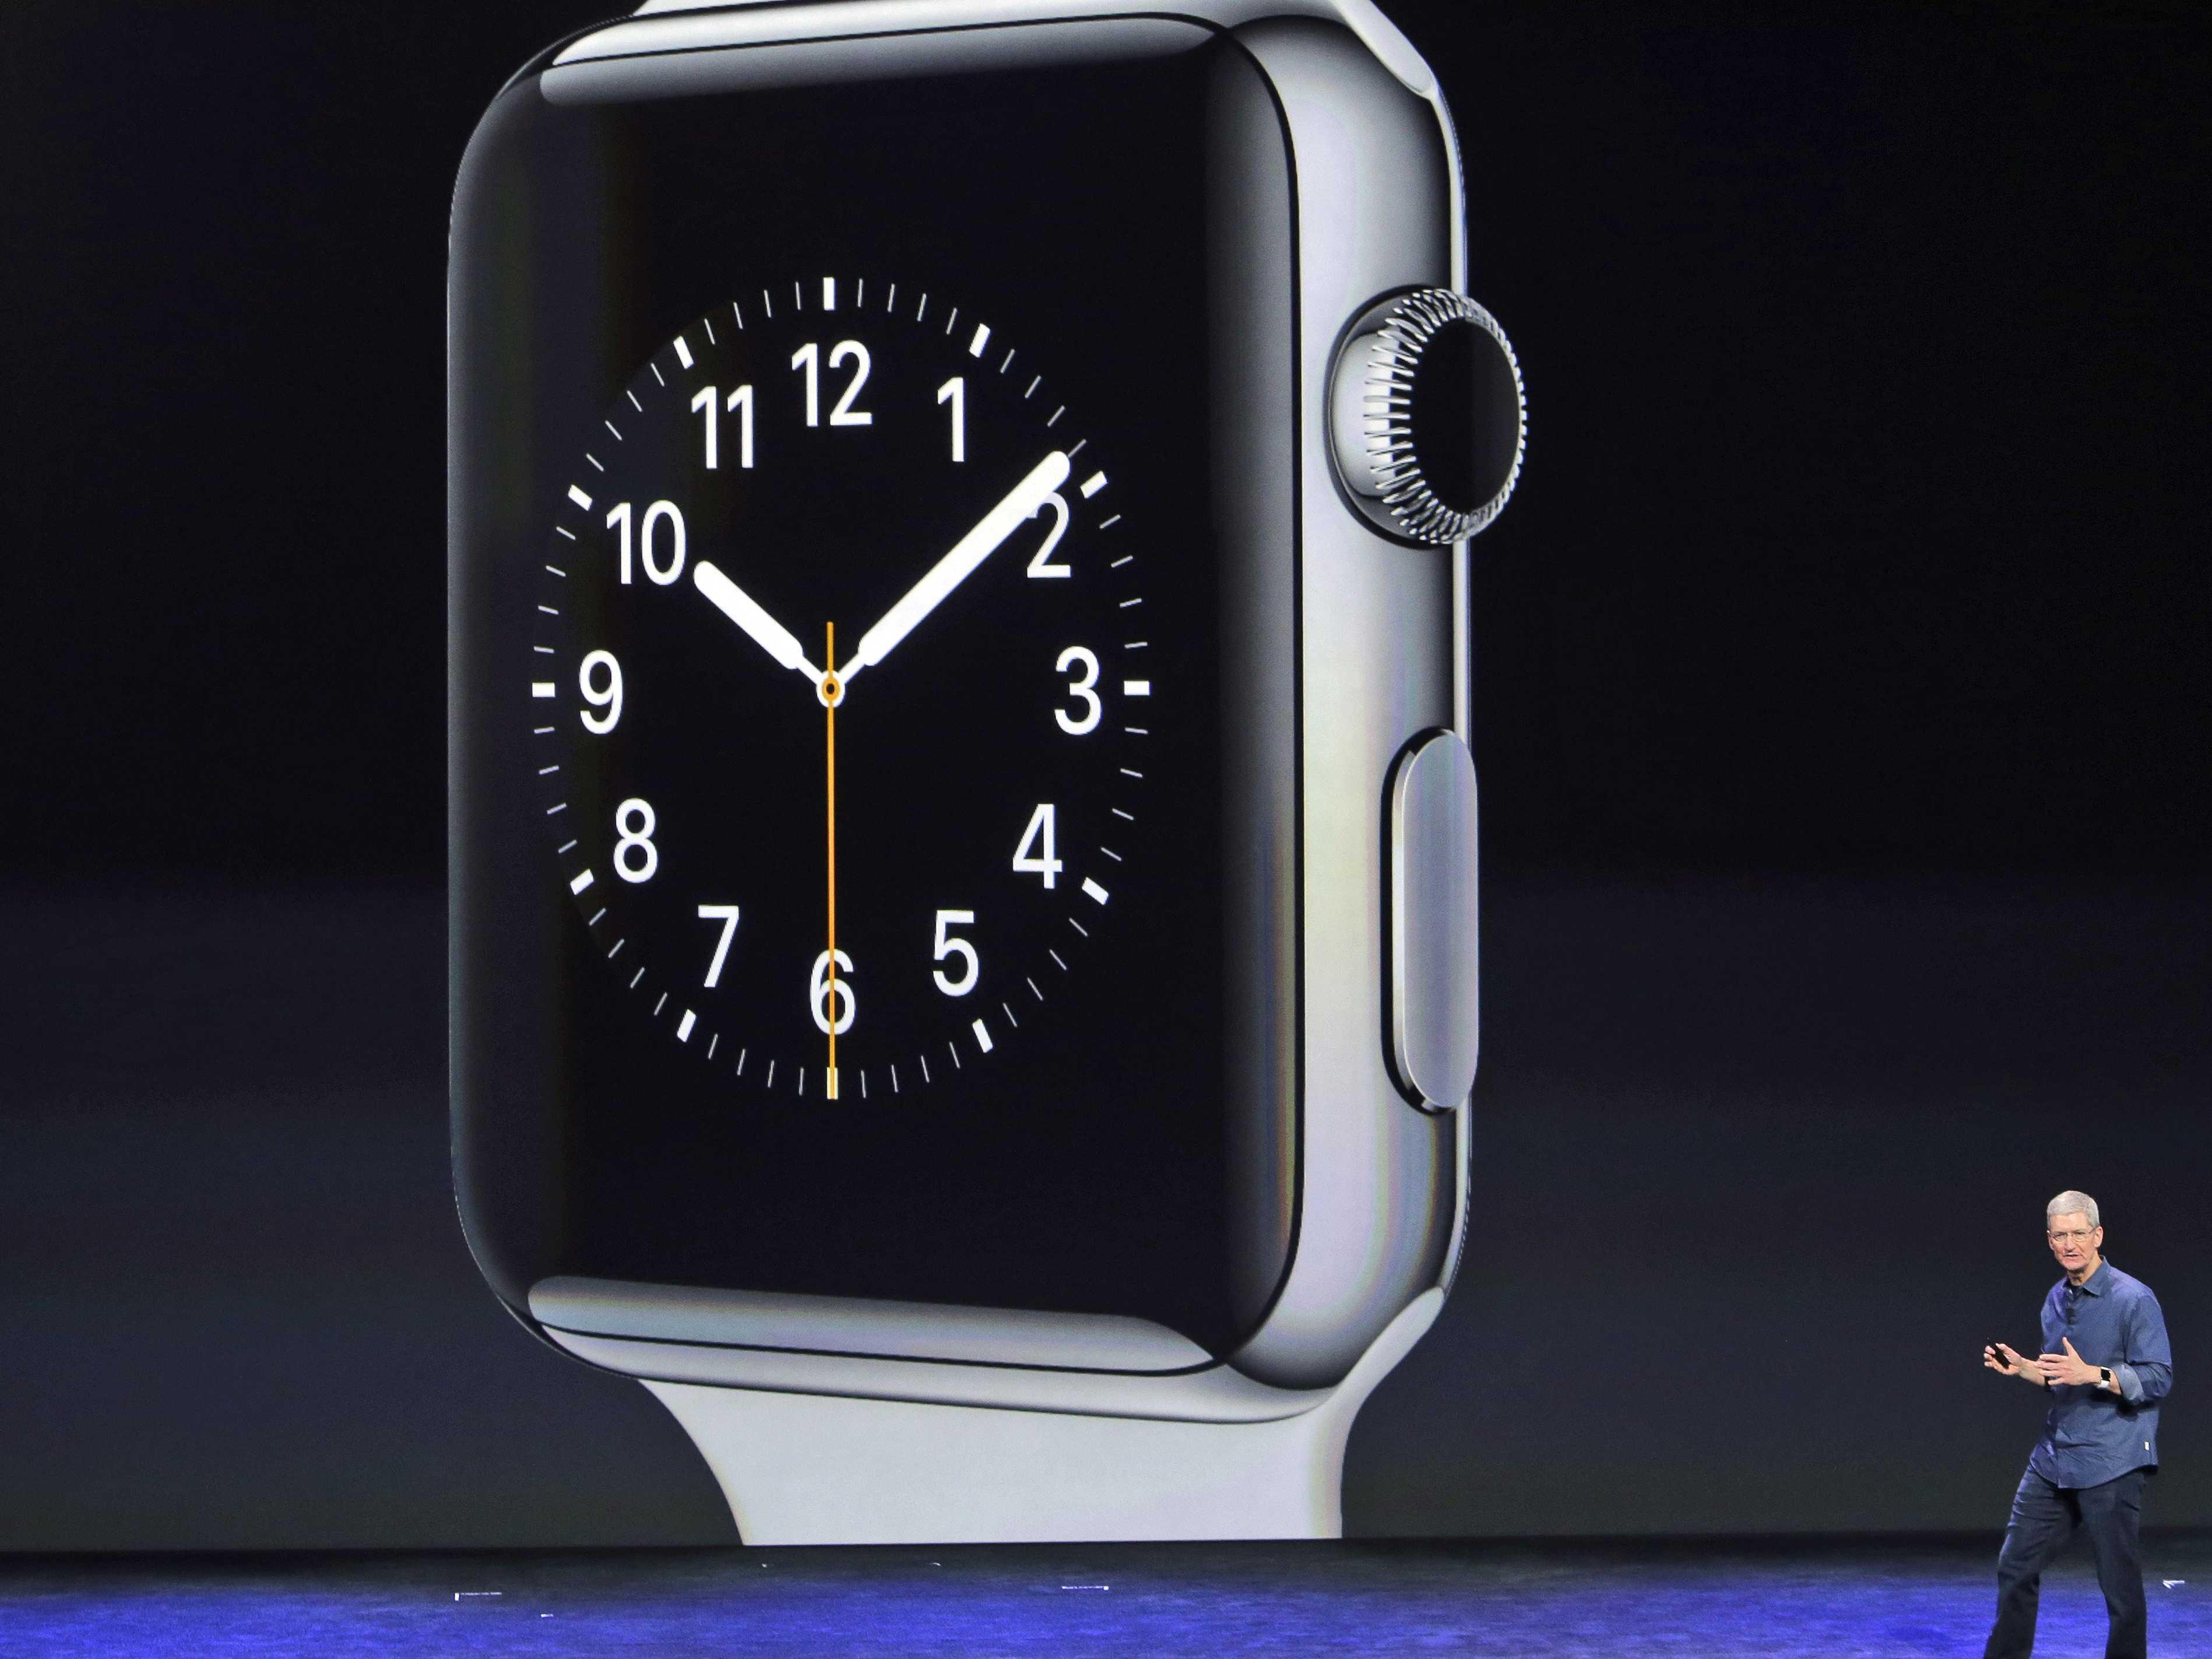 Tim Cook explains one very important way the Apple Watch will be like the iPhone